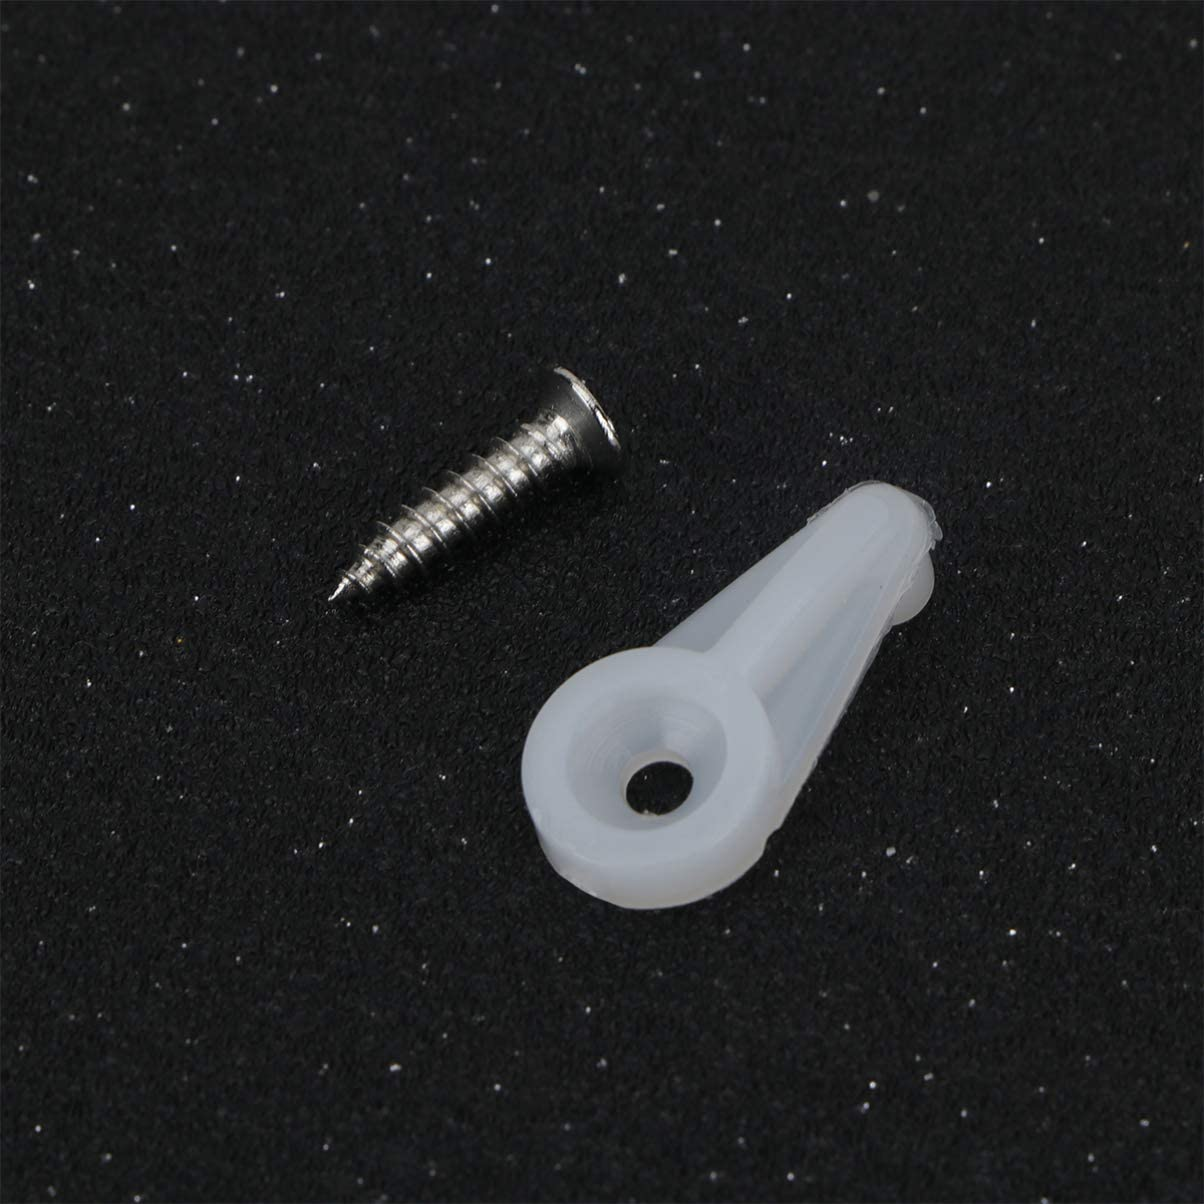 Yarnow 30pcs Retainer Clips Kit Panel Clips with Screws for Fixing Cabinet Doors with Screw White